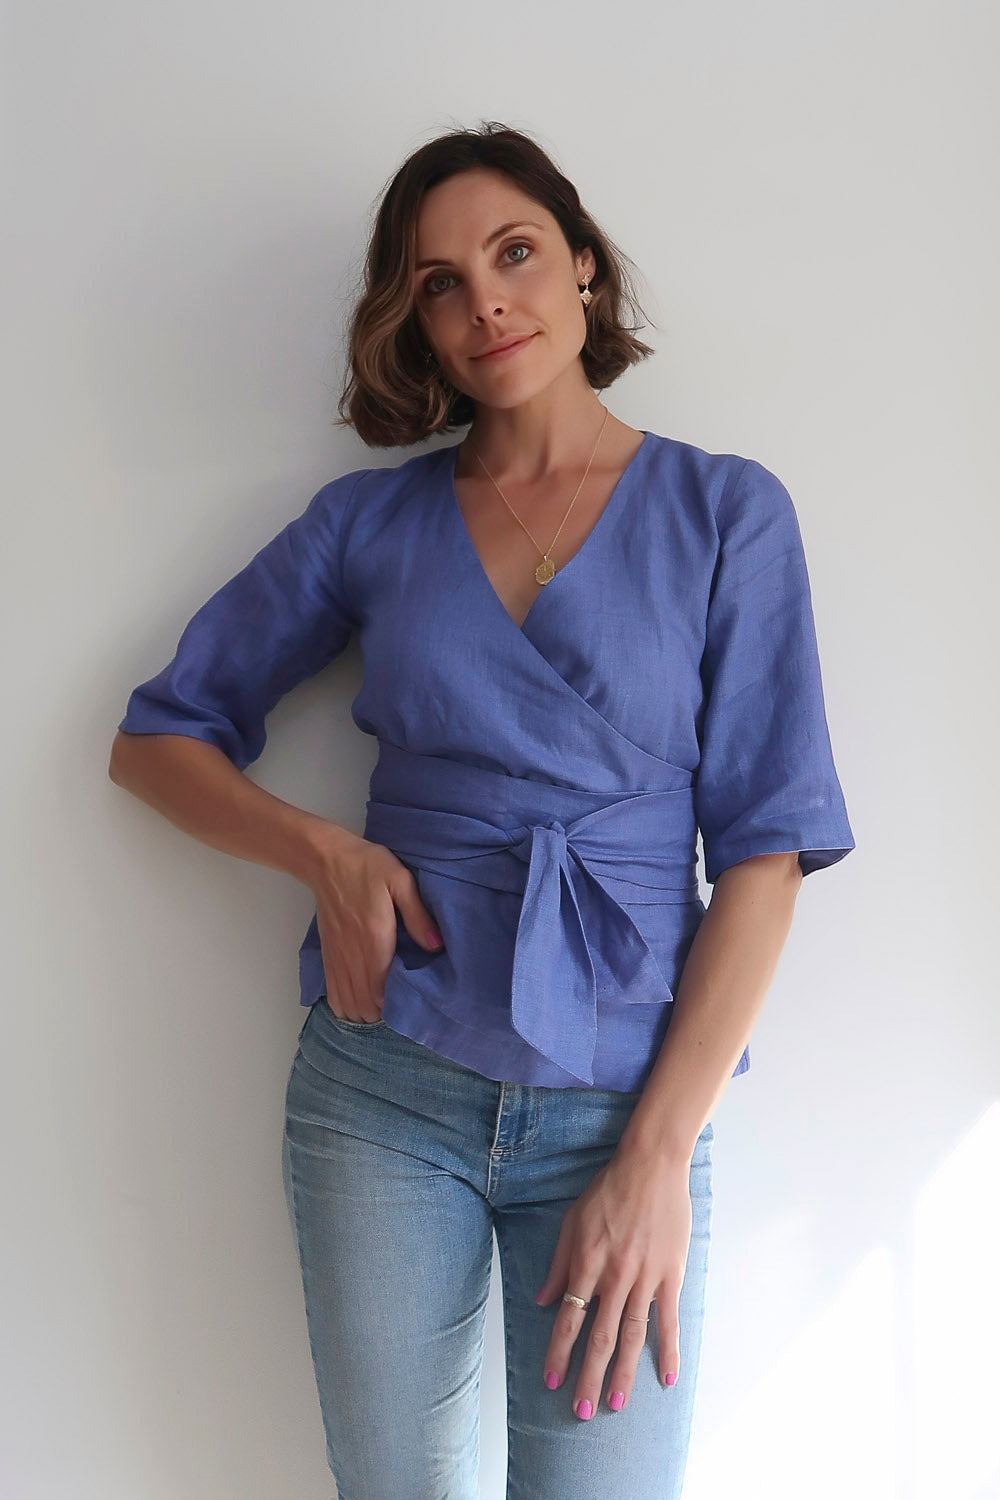 Blue, lilac linen top with tie waist belt. Cross over top